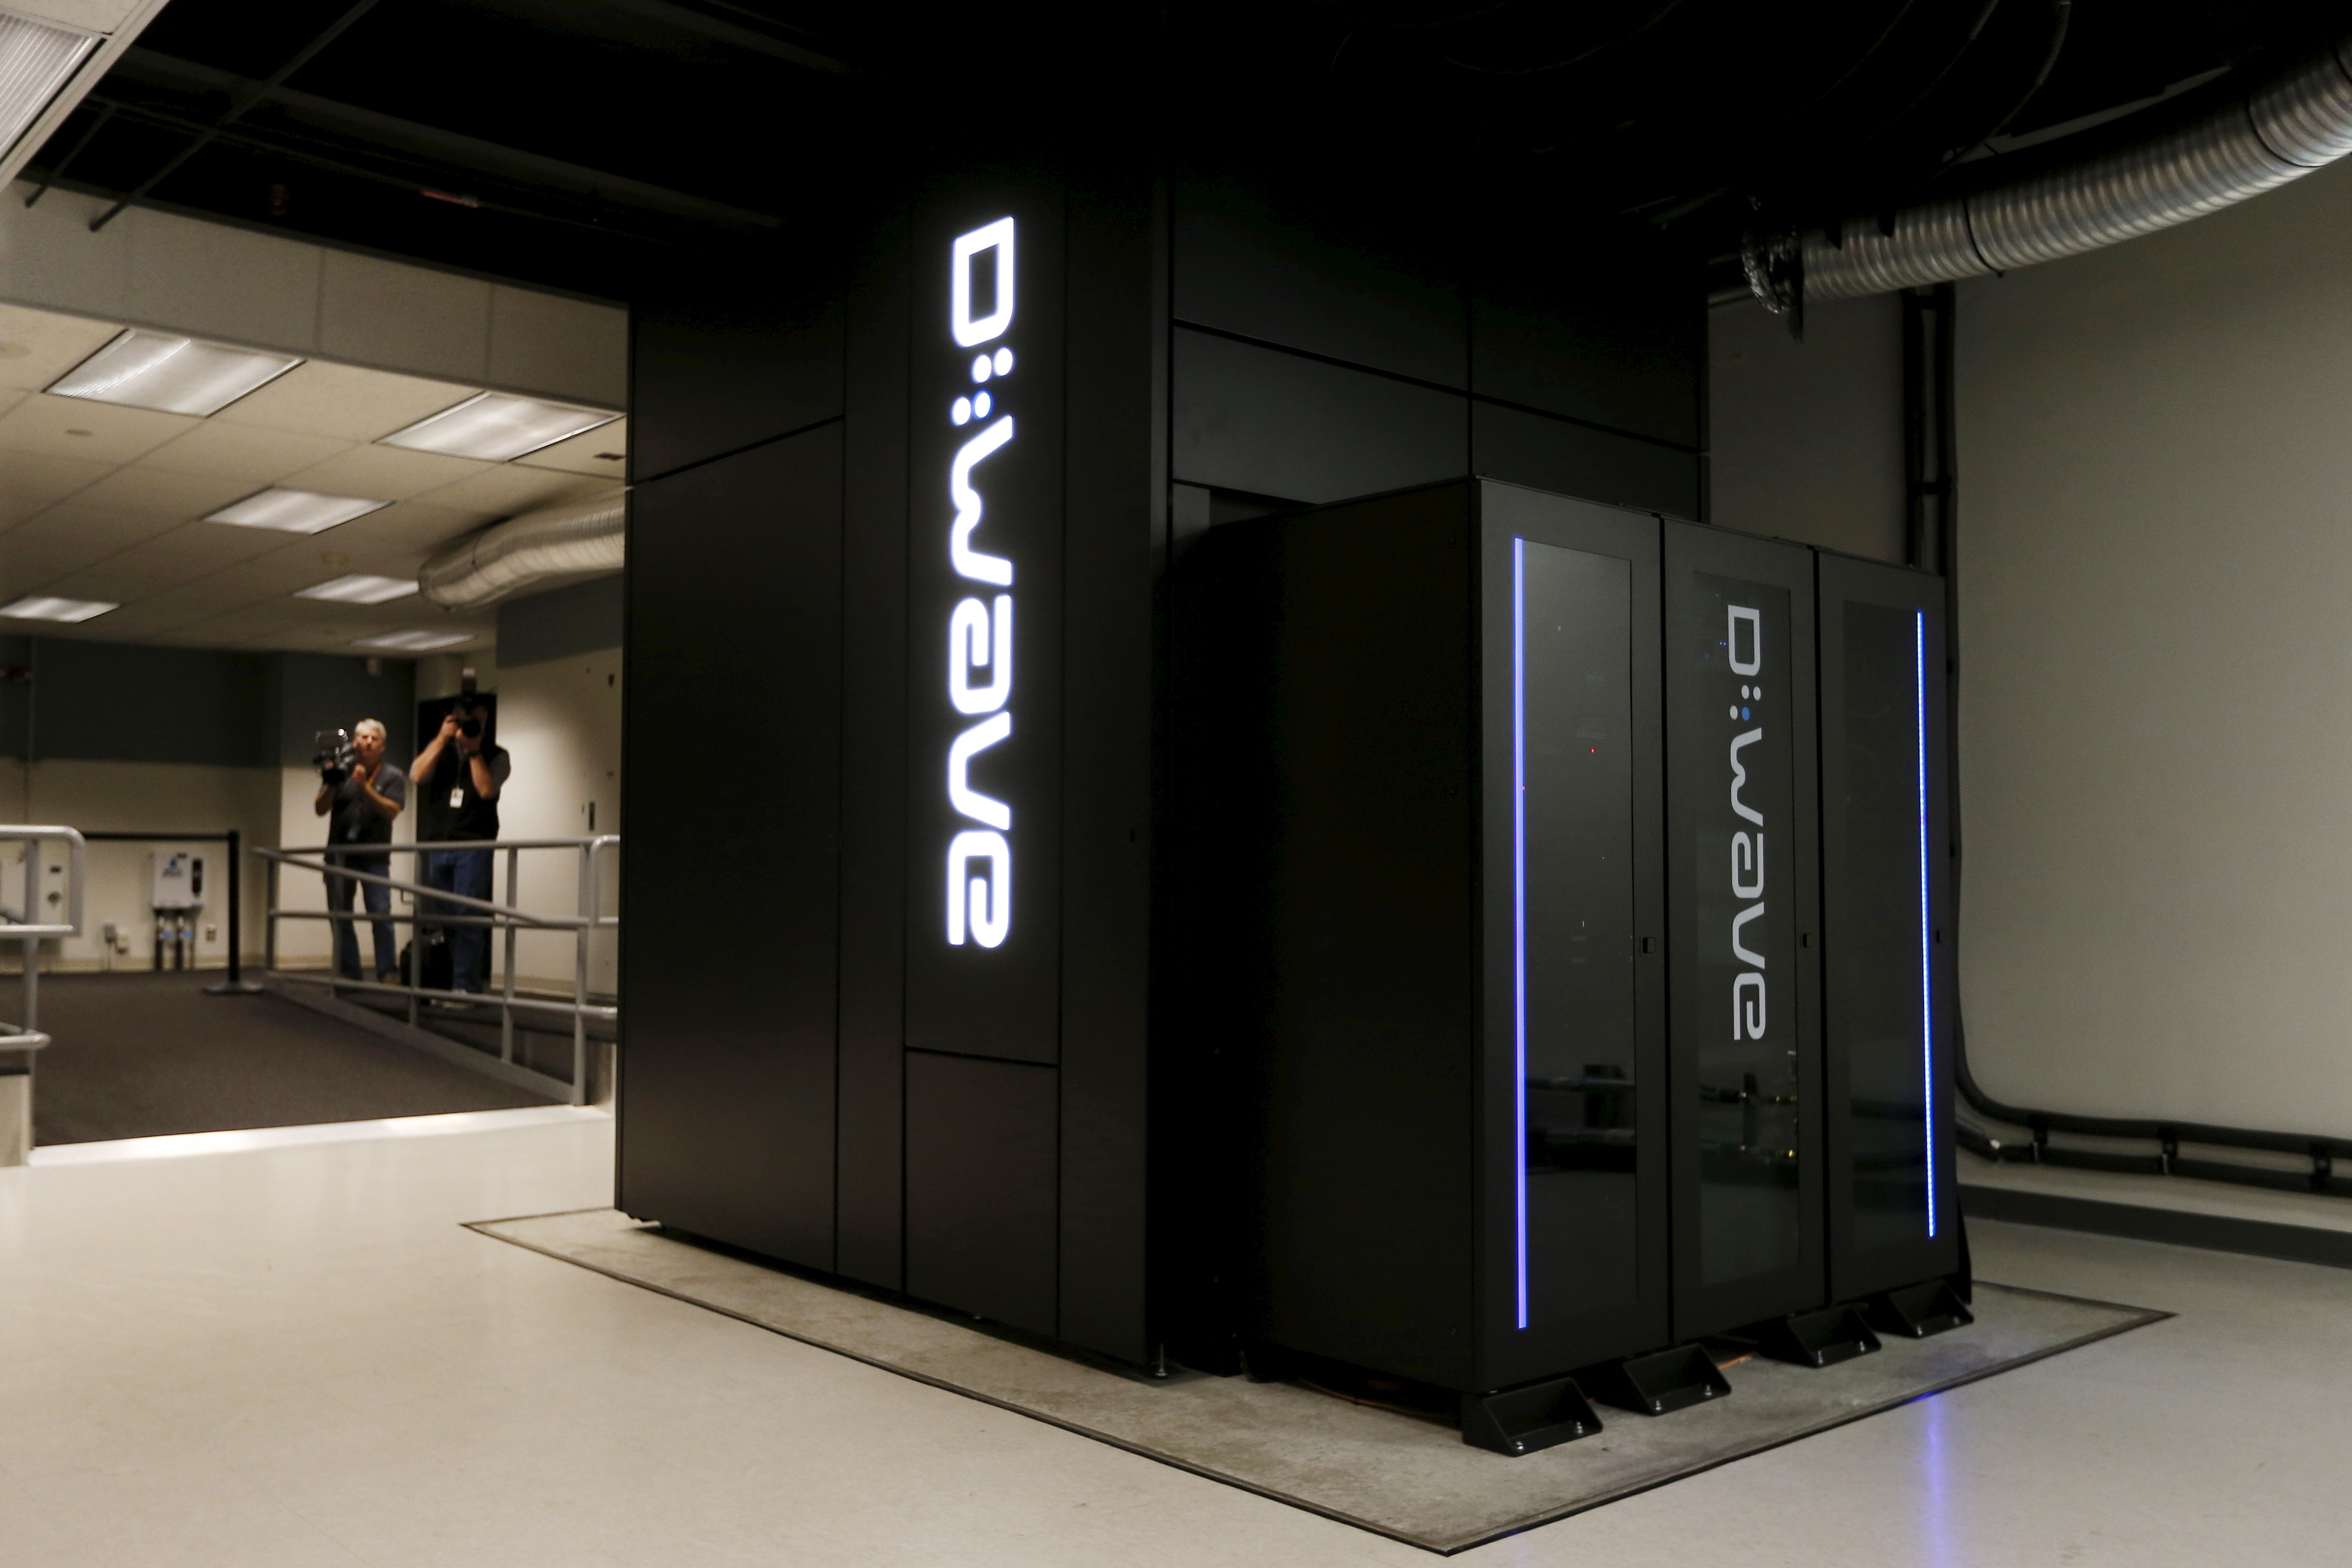 A D-Wave 2X quantum computer is pictured during a media tour of the Quantum Artificial Intelligence Laboratory (QuAIL) at NASA Ames Research Center in Mountain View, California, December 8, 2015.